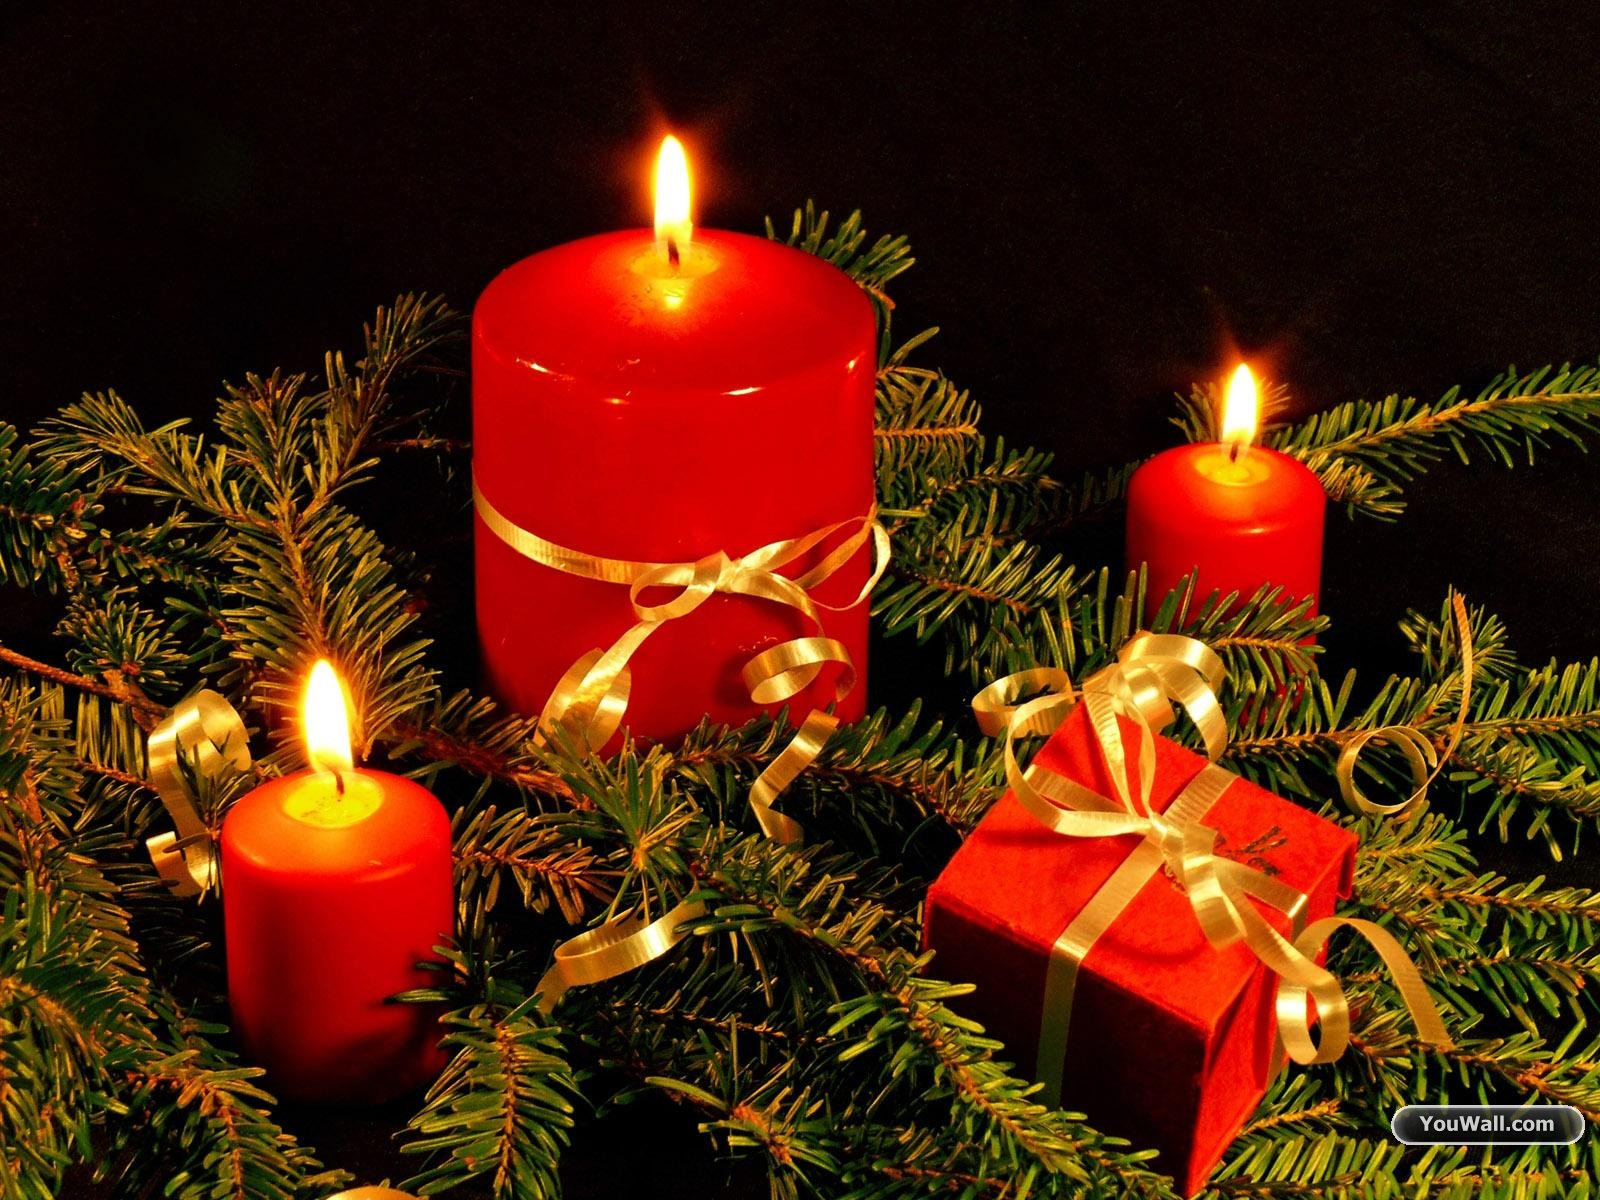 Christmas Candles Wallpaper   wallpaperwallpapersfree wallpaper 1600x1200